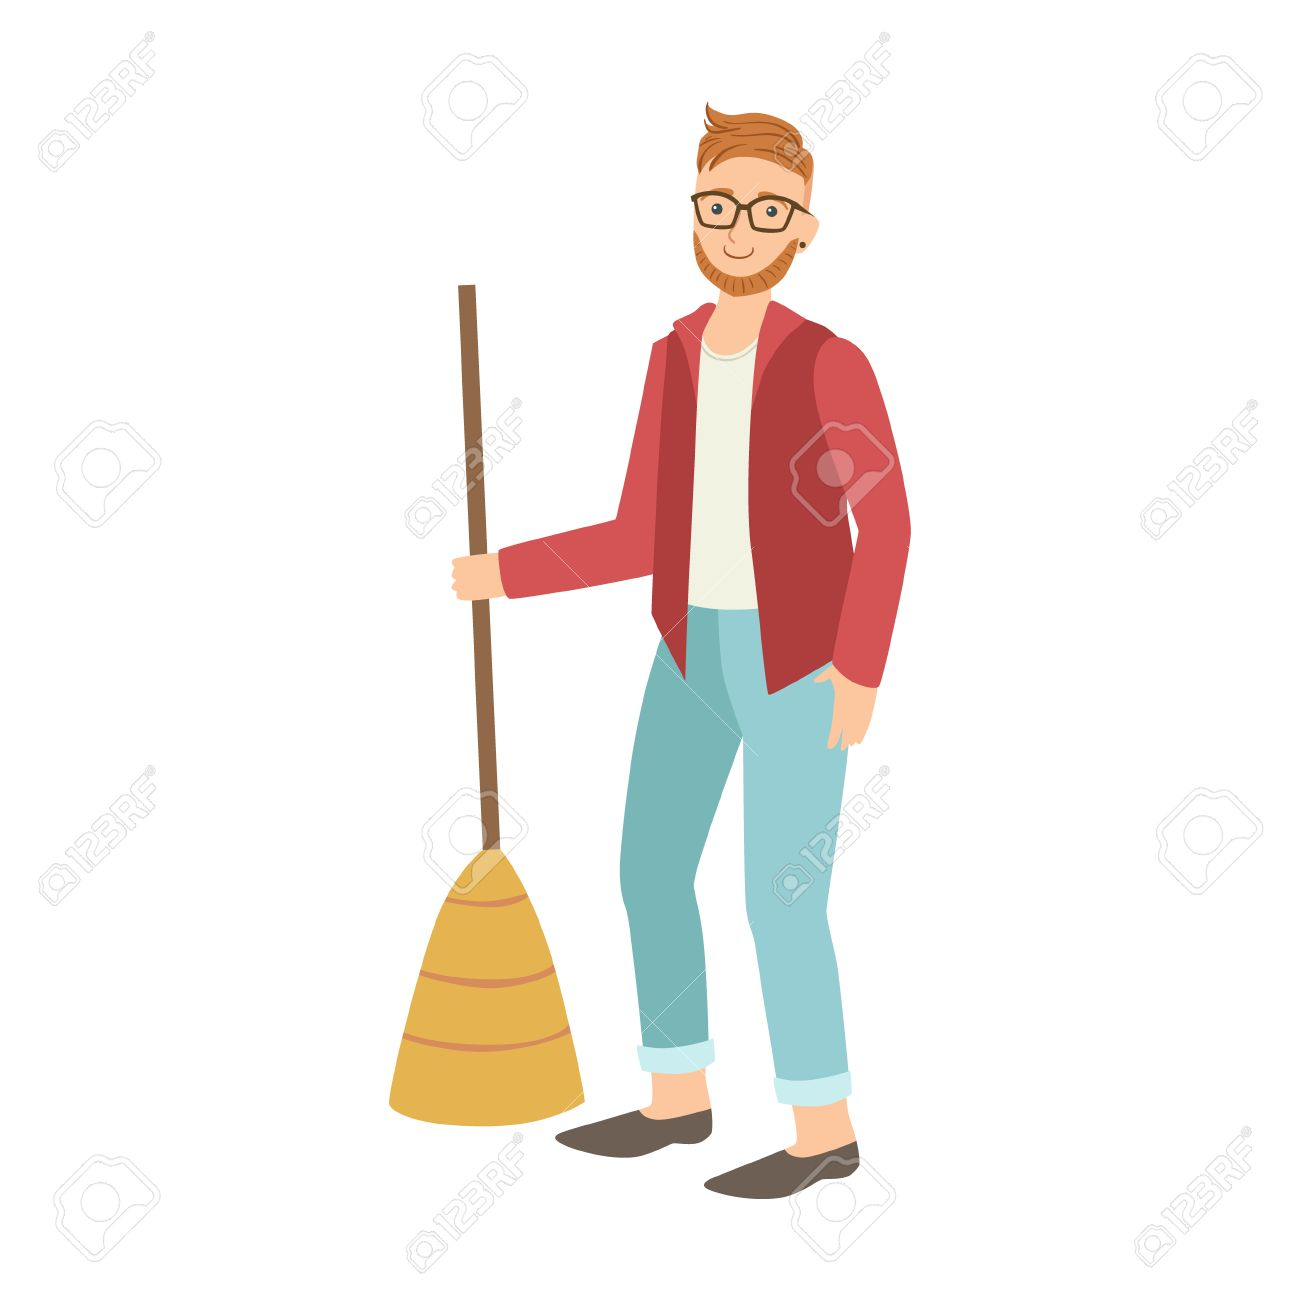 Man With Broom Sweeping The Floor Cartoon Adult Characters Cleaning